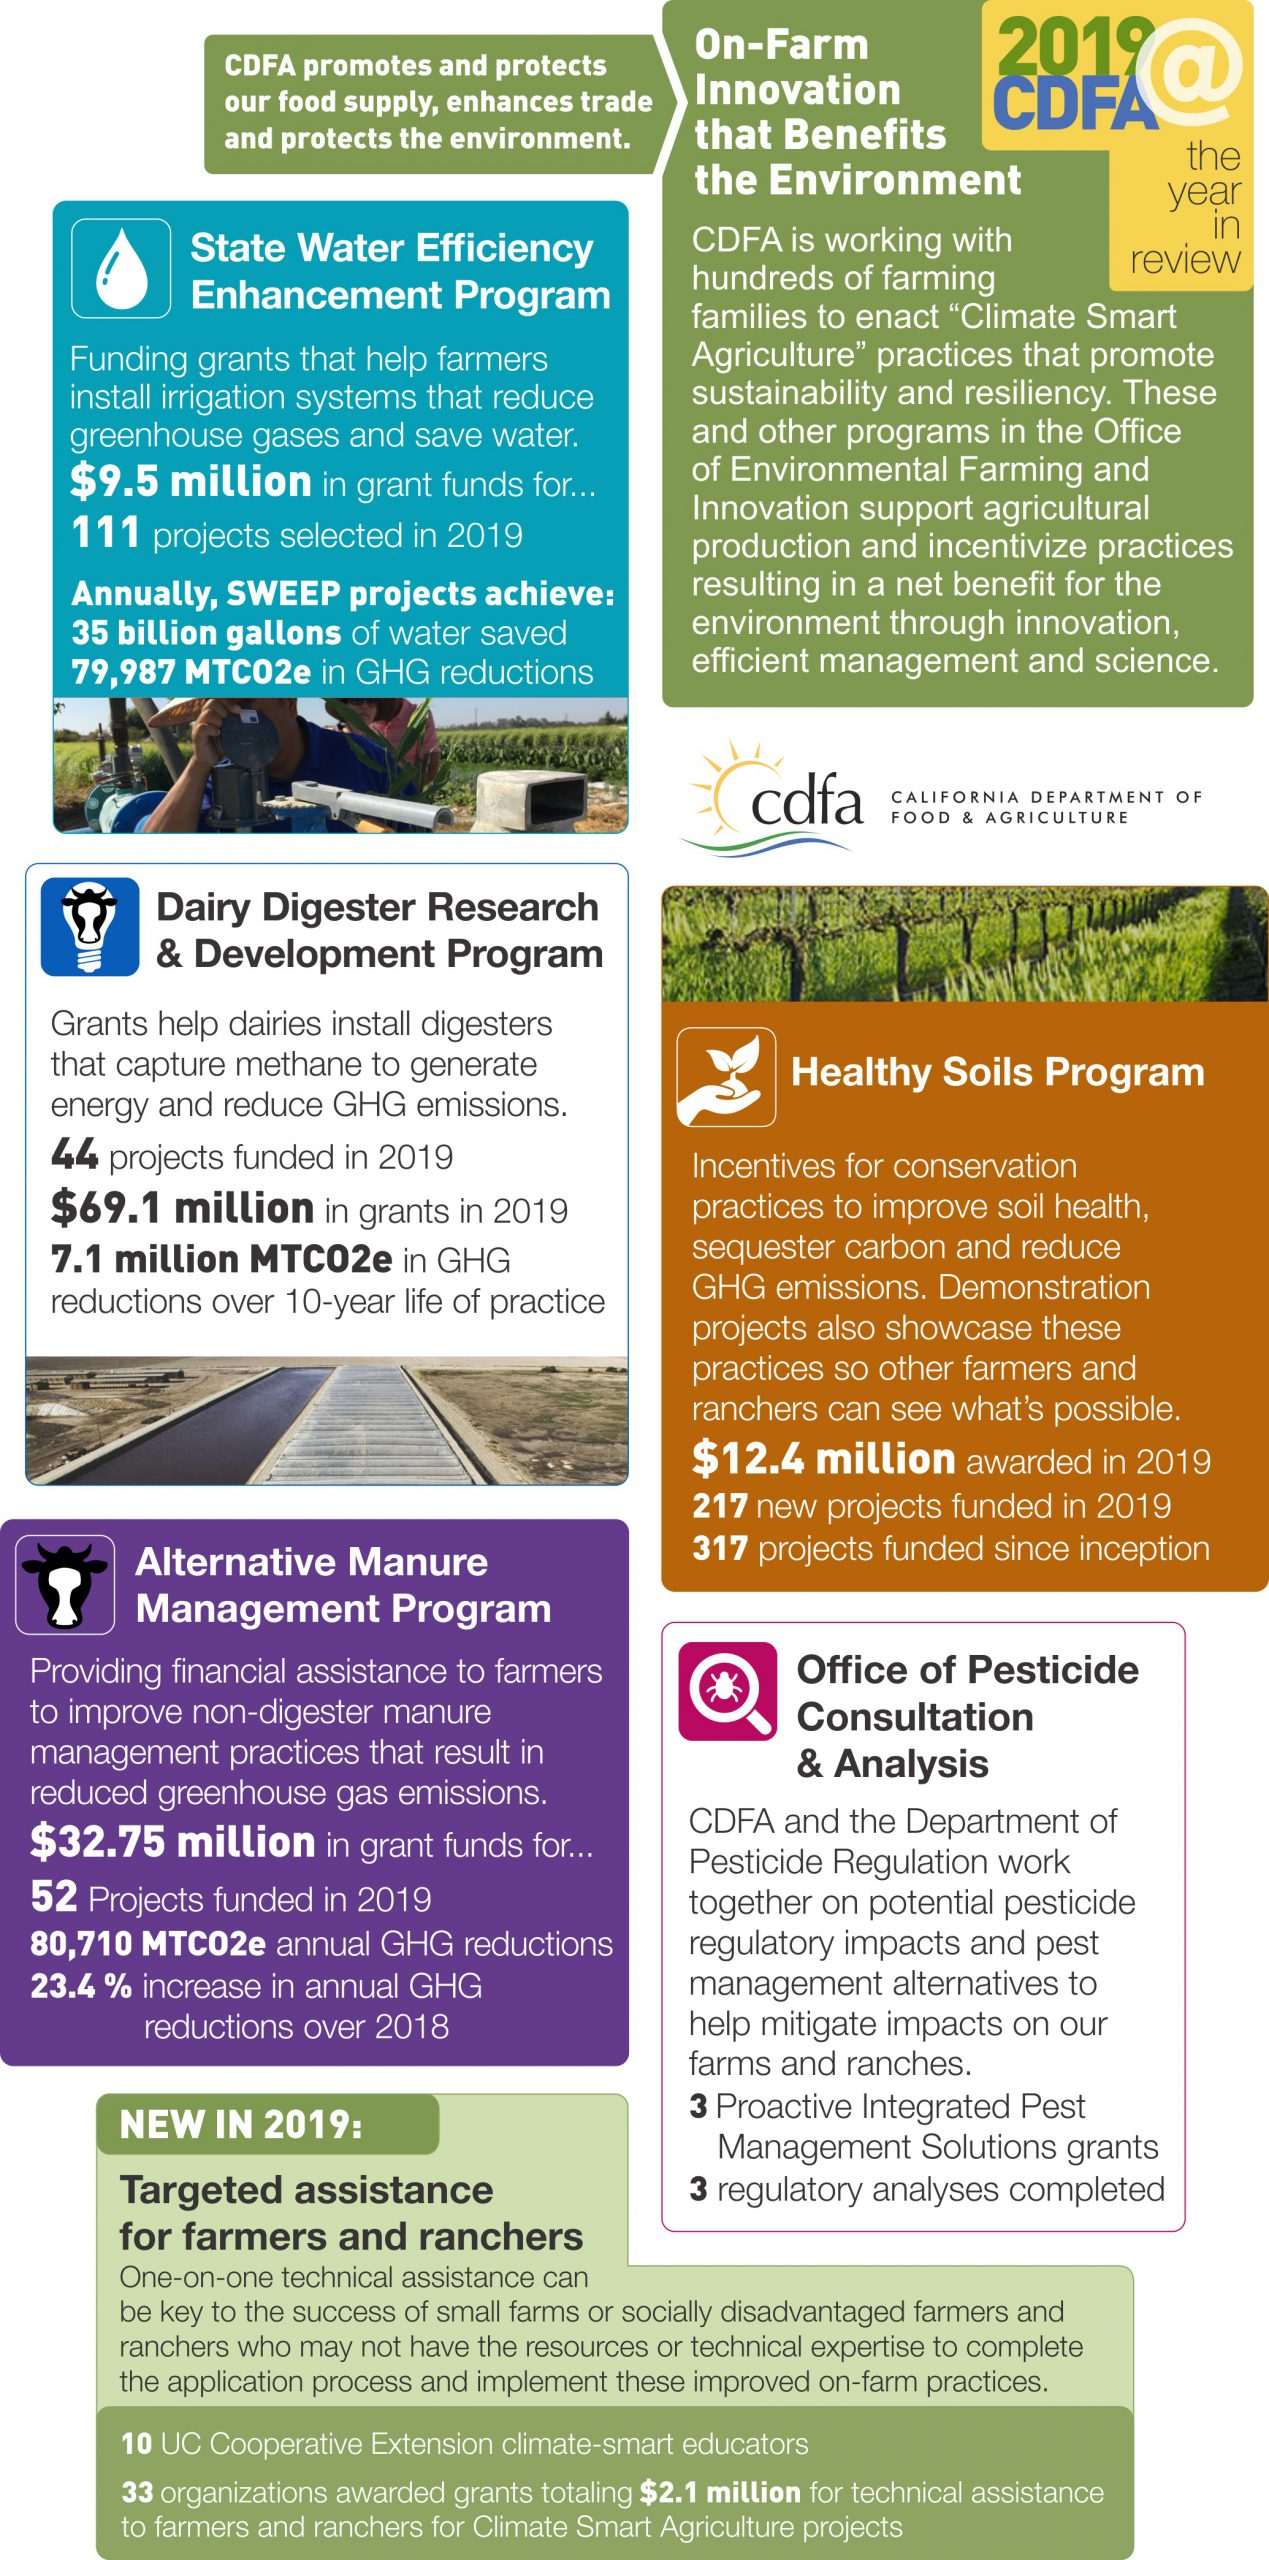 Infographic with boxes describing the benefits and achievements of several Climate Smart Agriculture programs: State Water Efficiency Enhancement Program; Dairy Digester Research and Development Program; Healthy Soils Program; Alternative Manure Management Program; Office of Pesticide Consultation and Analysis; and Technical Assistance Program.